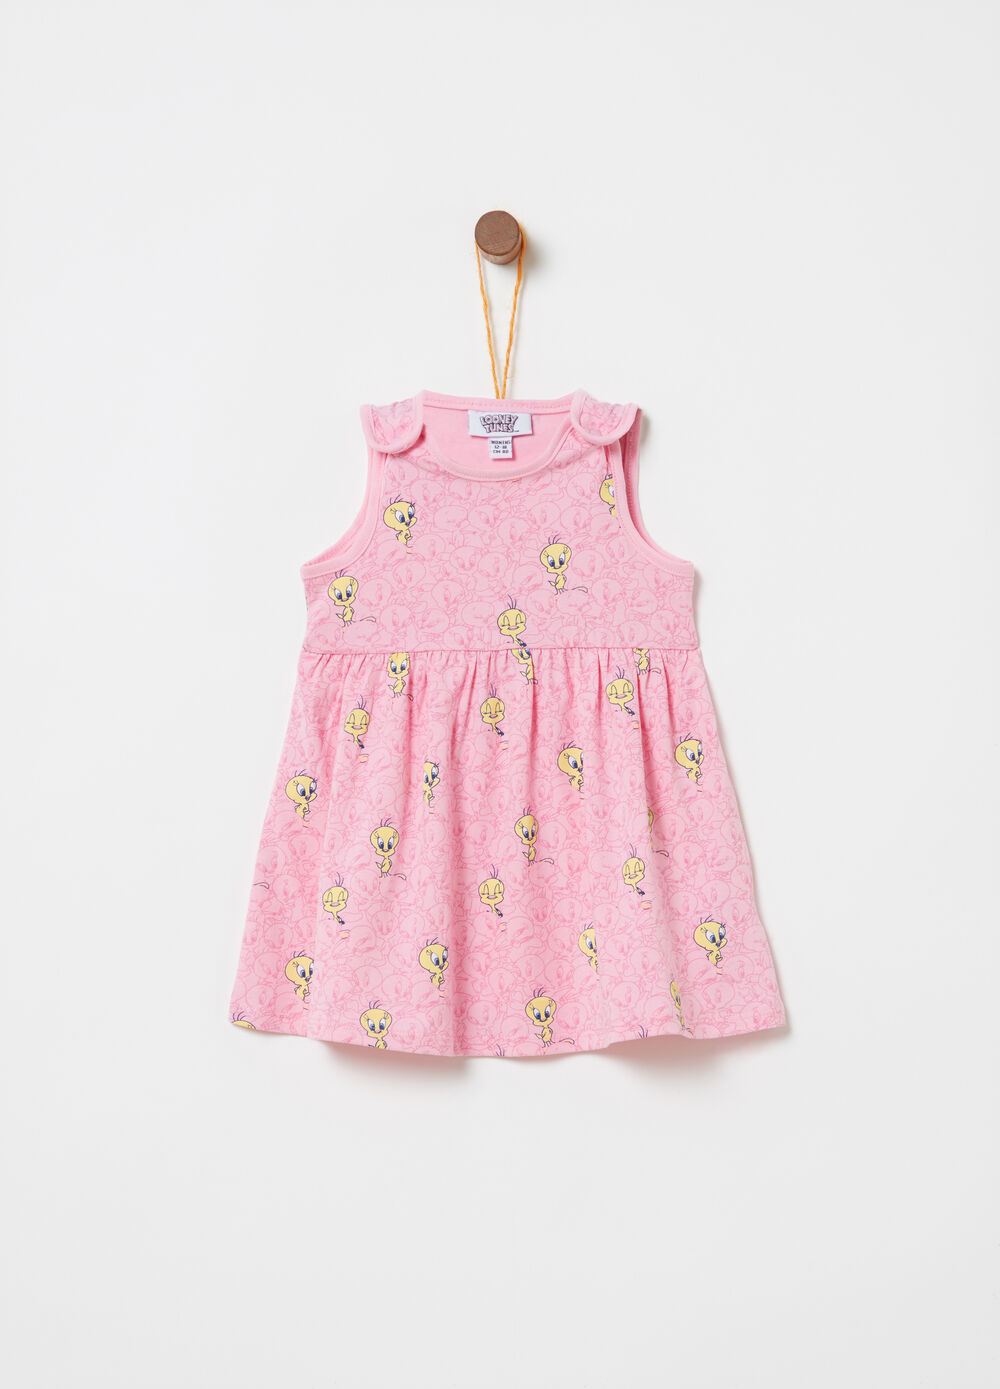 Sleeveless BCI dress with Tweetie Pie pattern